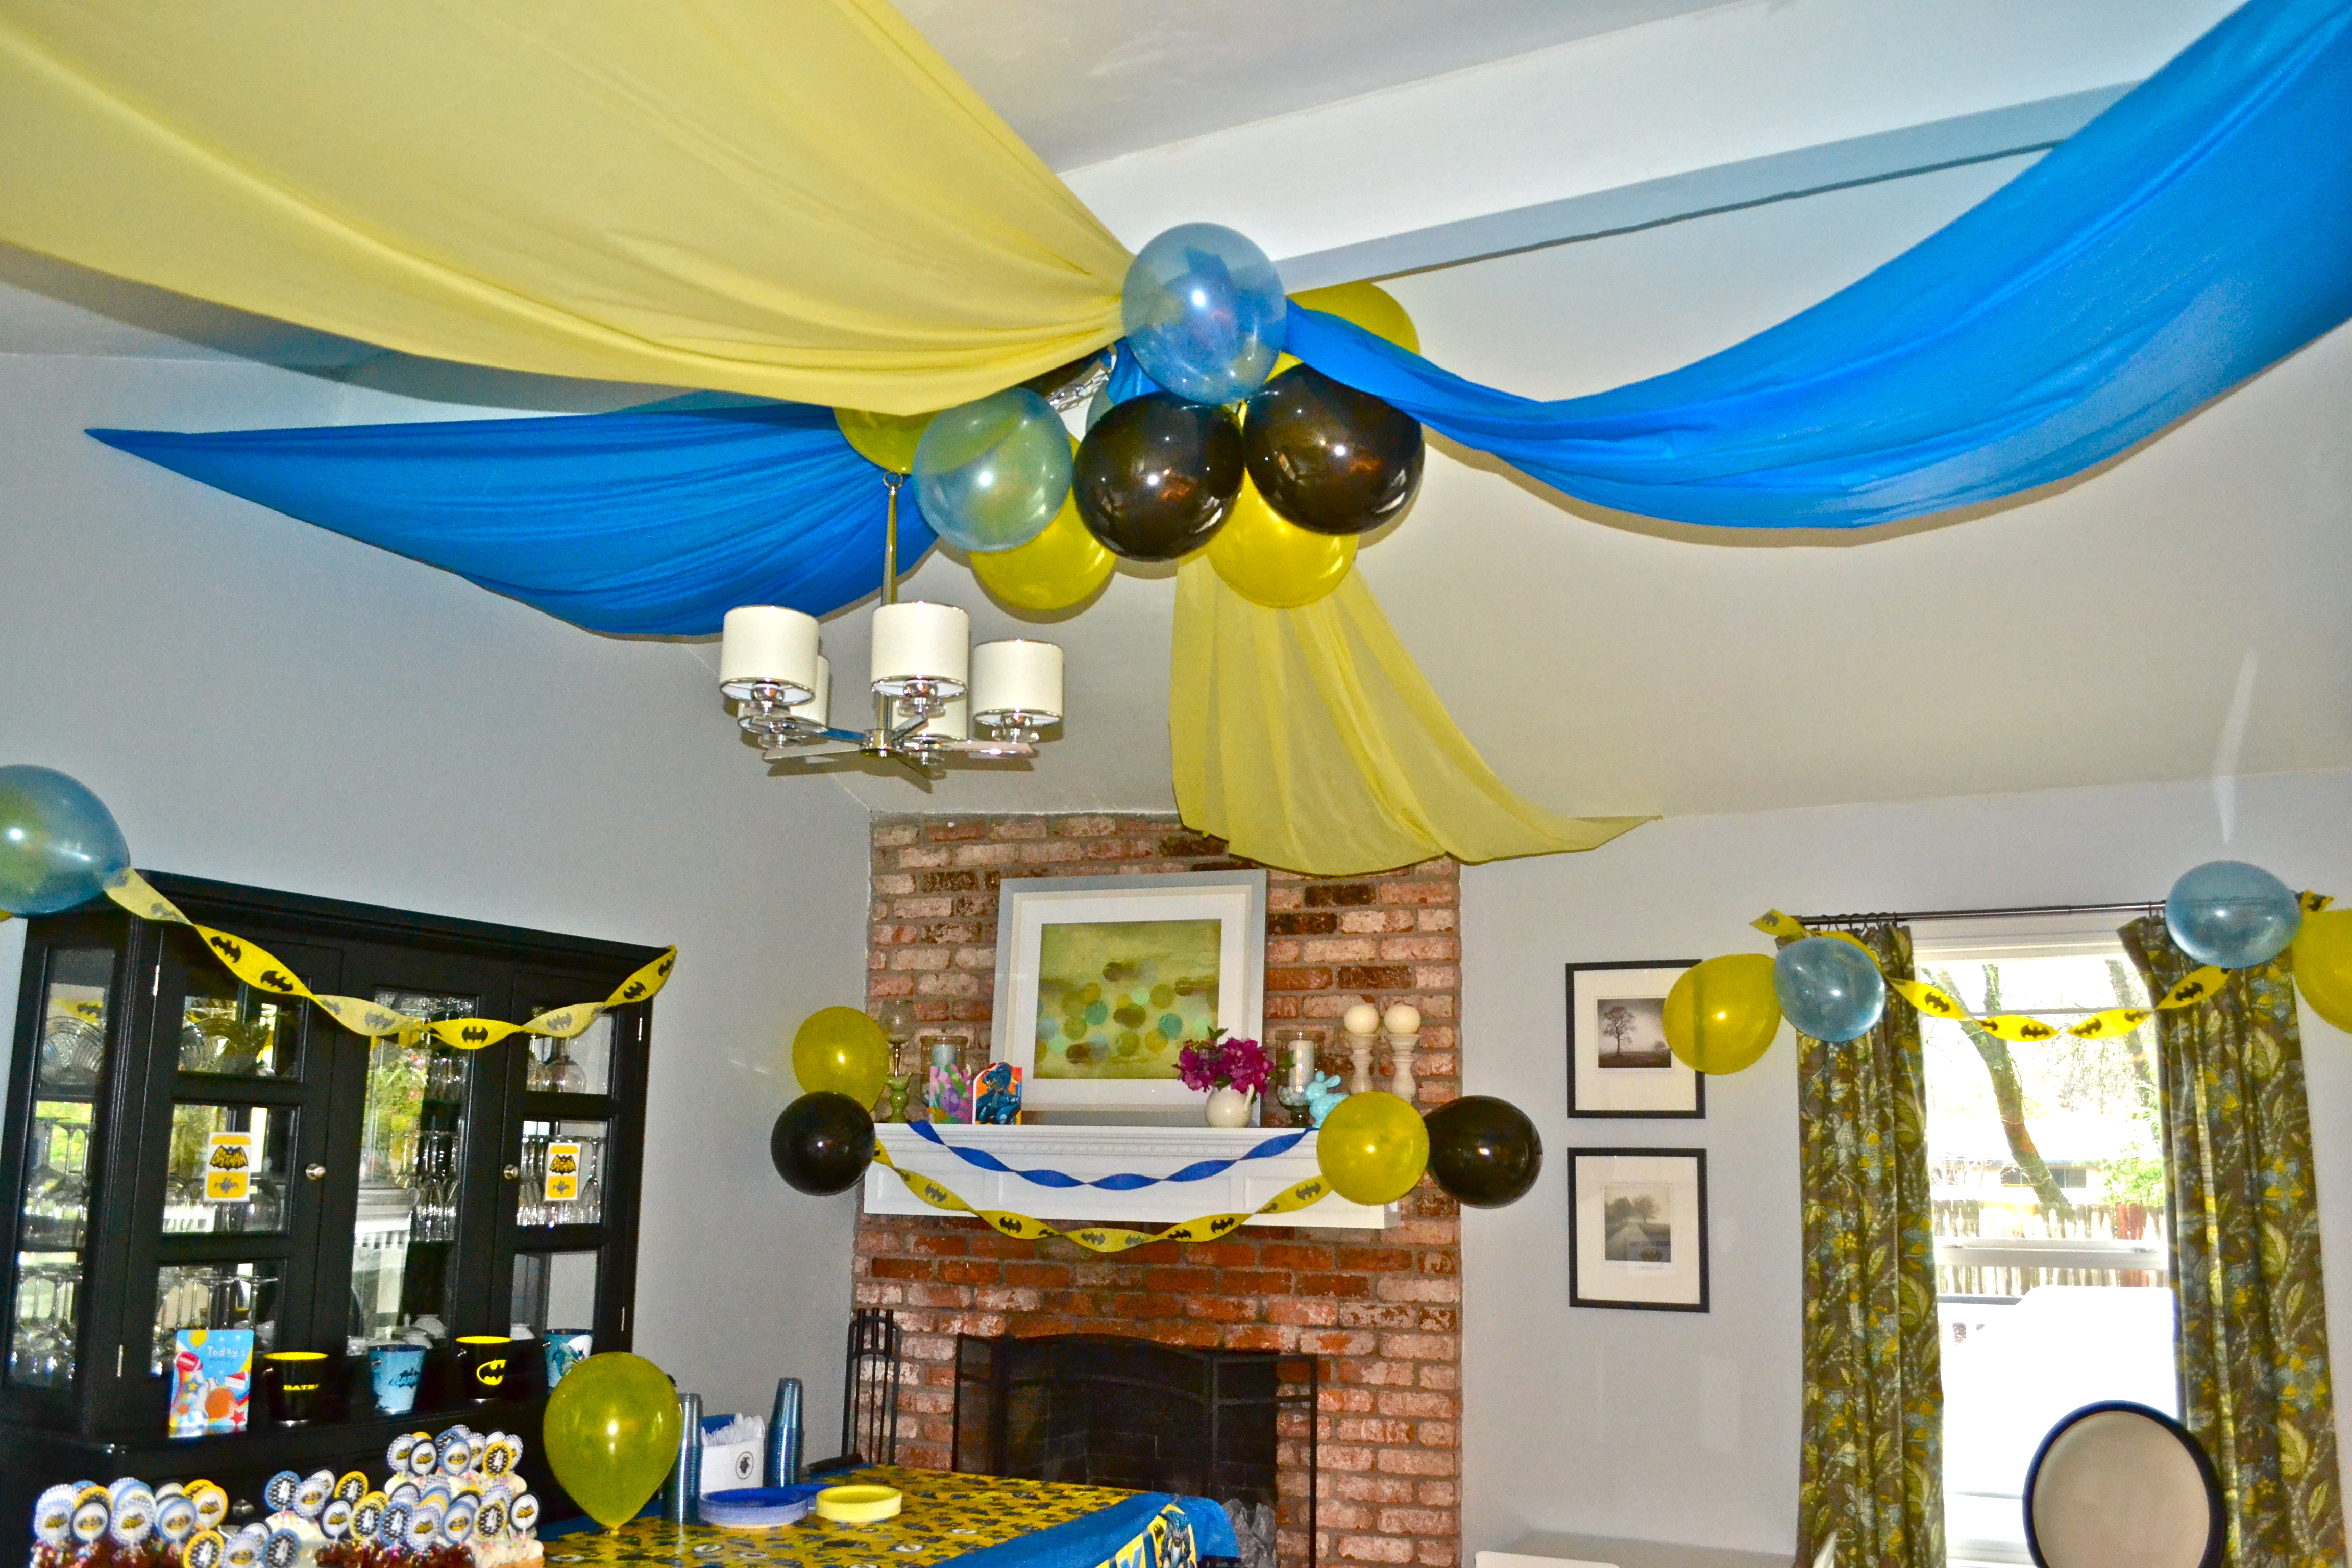 Batman images housematekate for Balloon and streamer decoration ideas